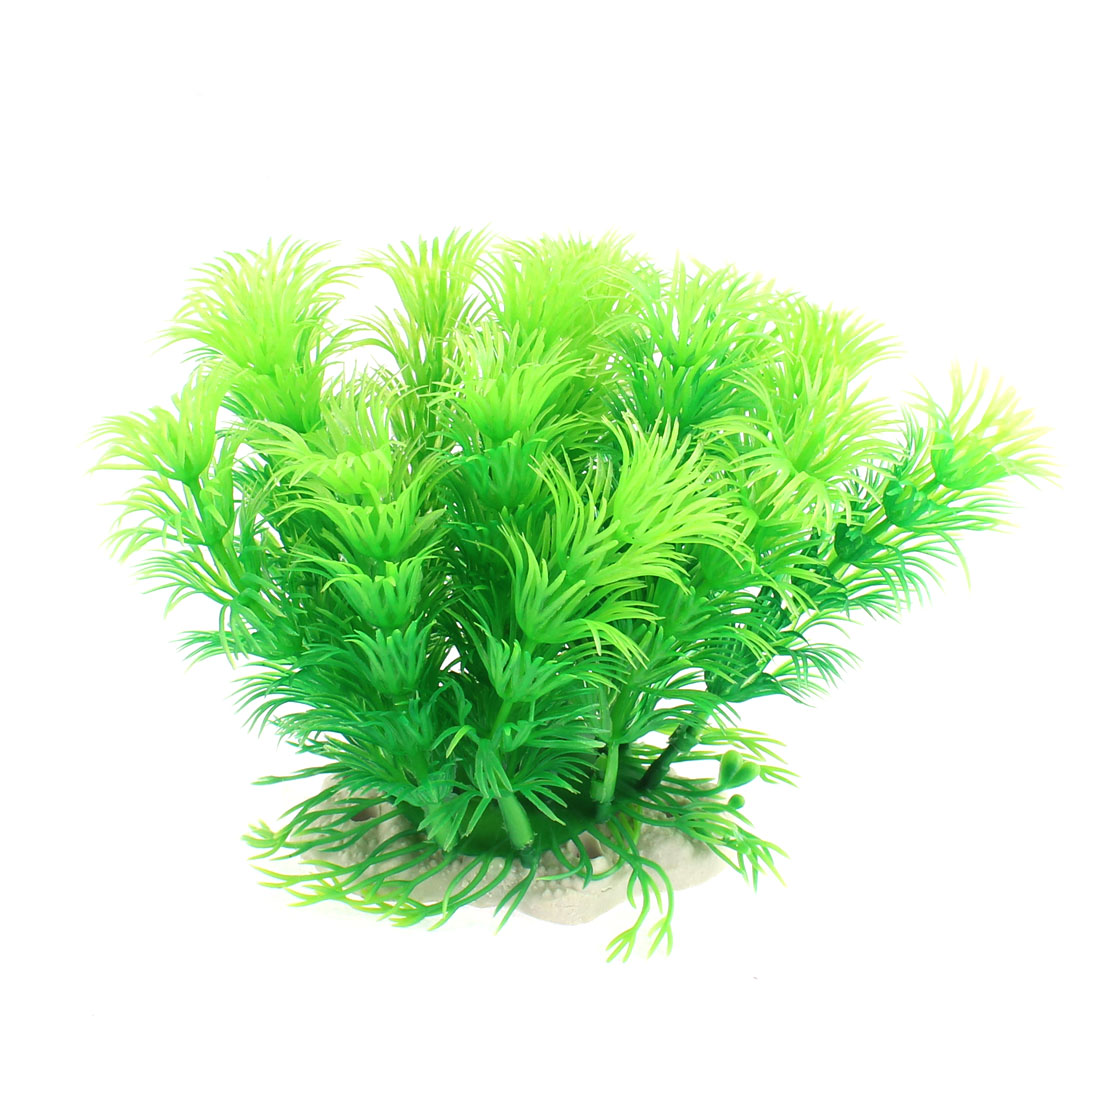 Aquarium Artificial Aquatic Grass Plant Decor Green